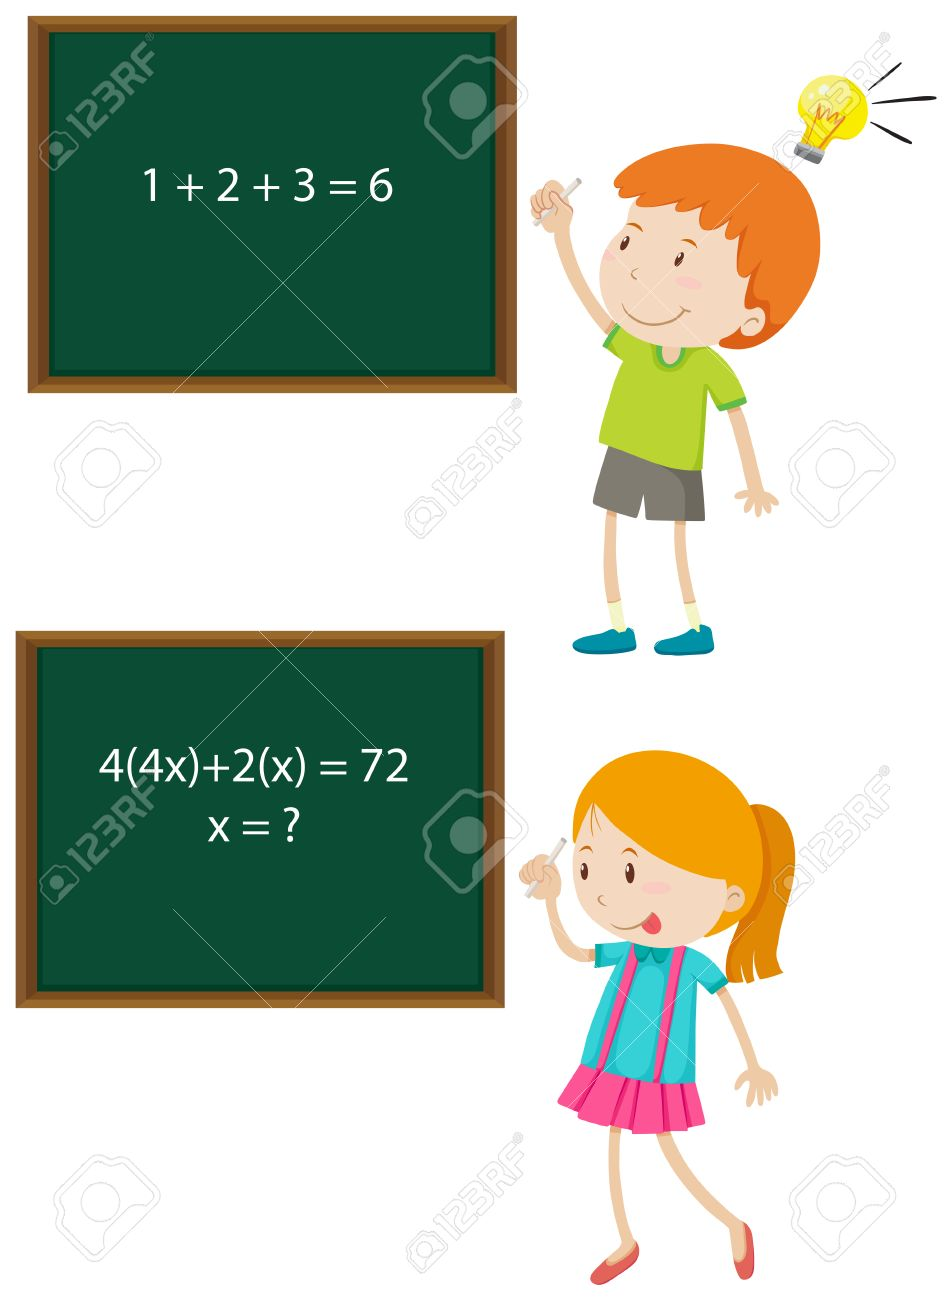 Children Solving Math Problems Illustration Royalty Free Cliparts ...